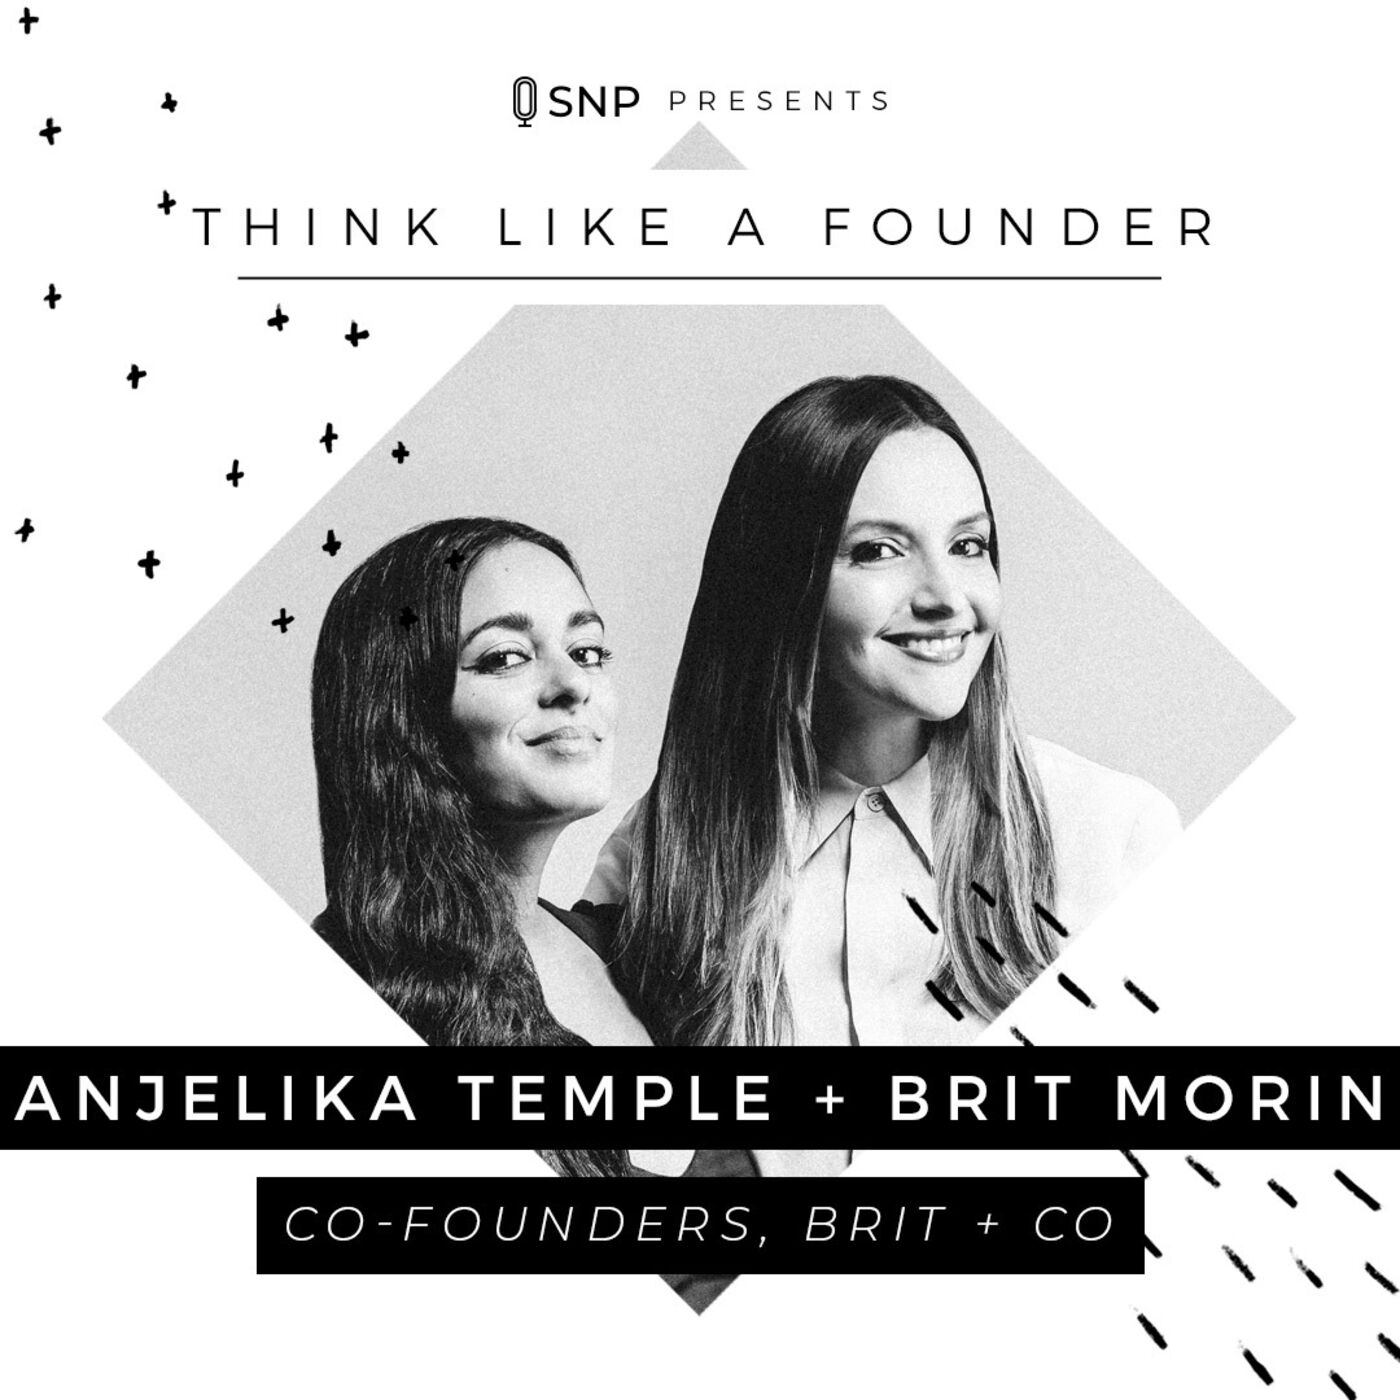 016: Brit Morin and Anj Temple - Co-Founders of Brit + Co